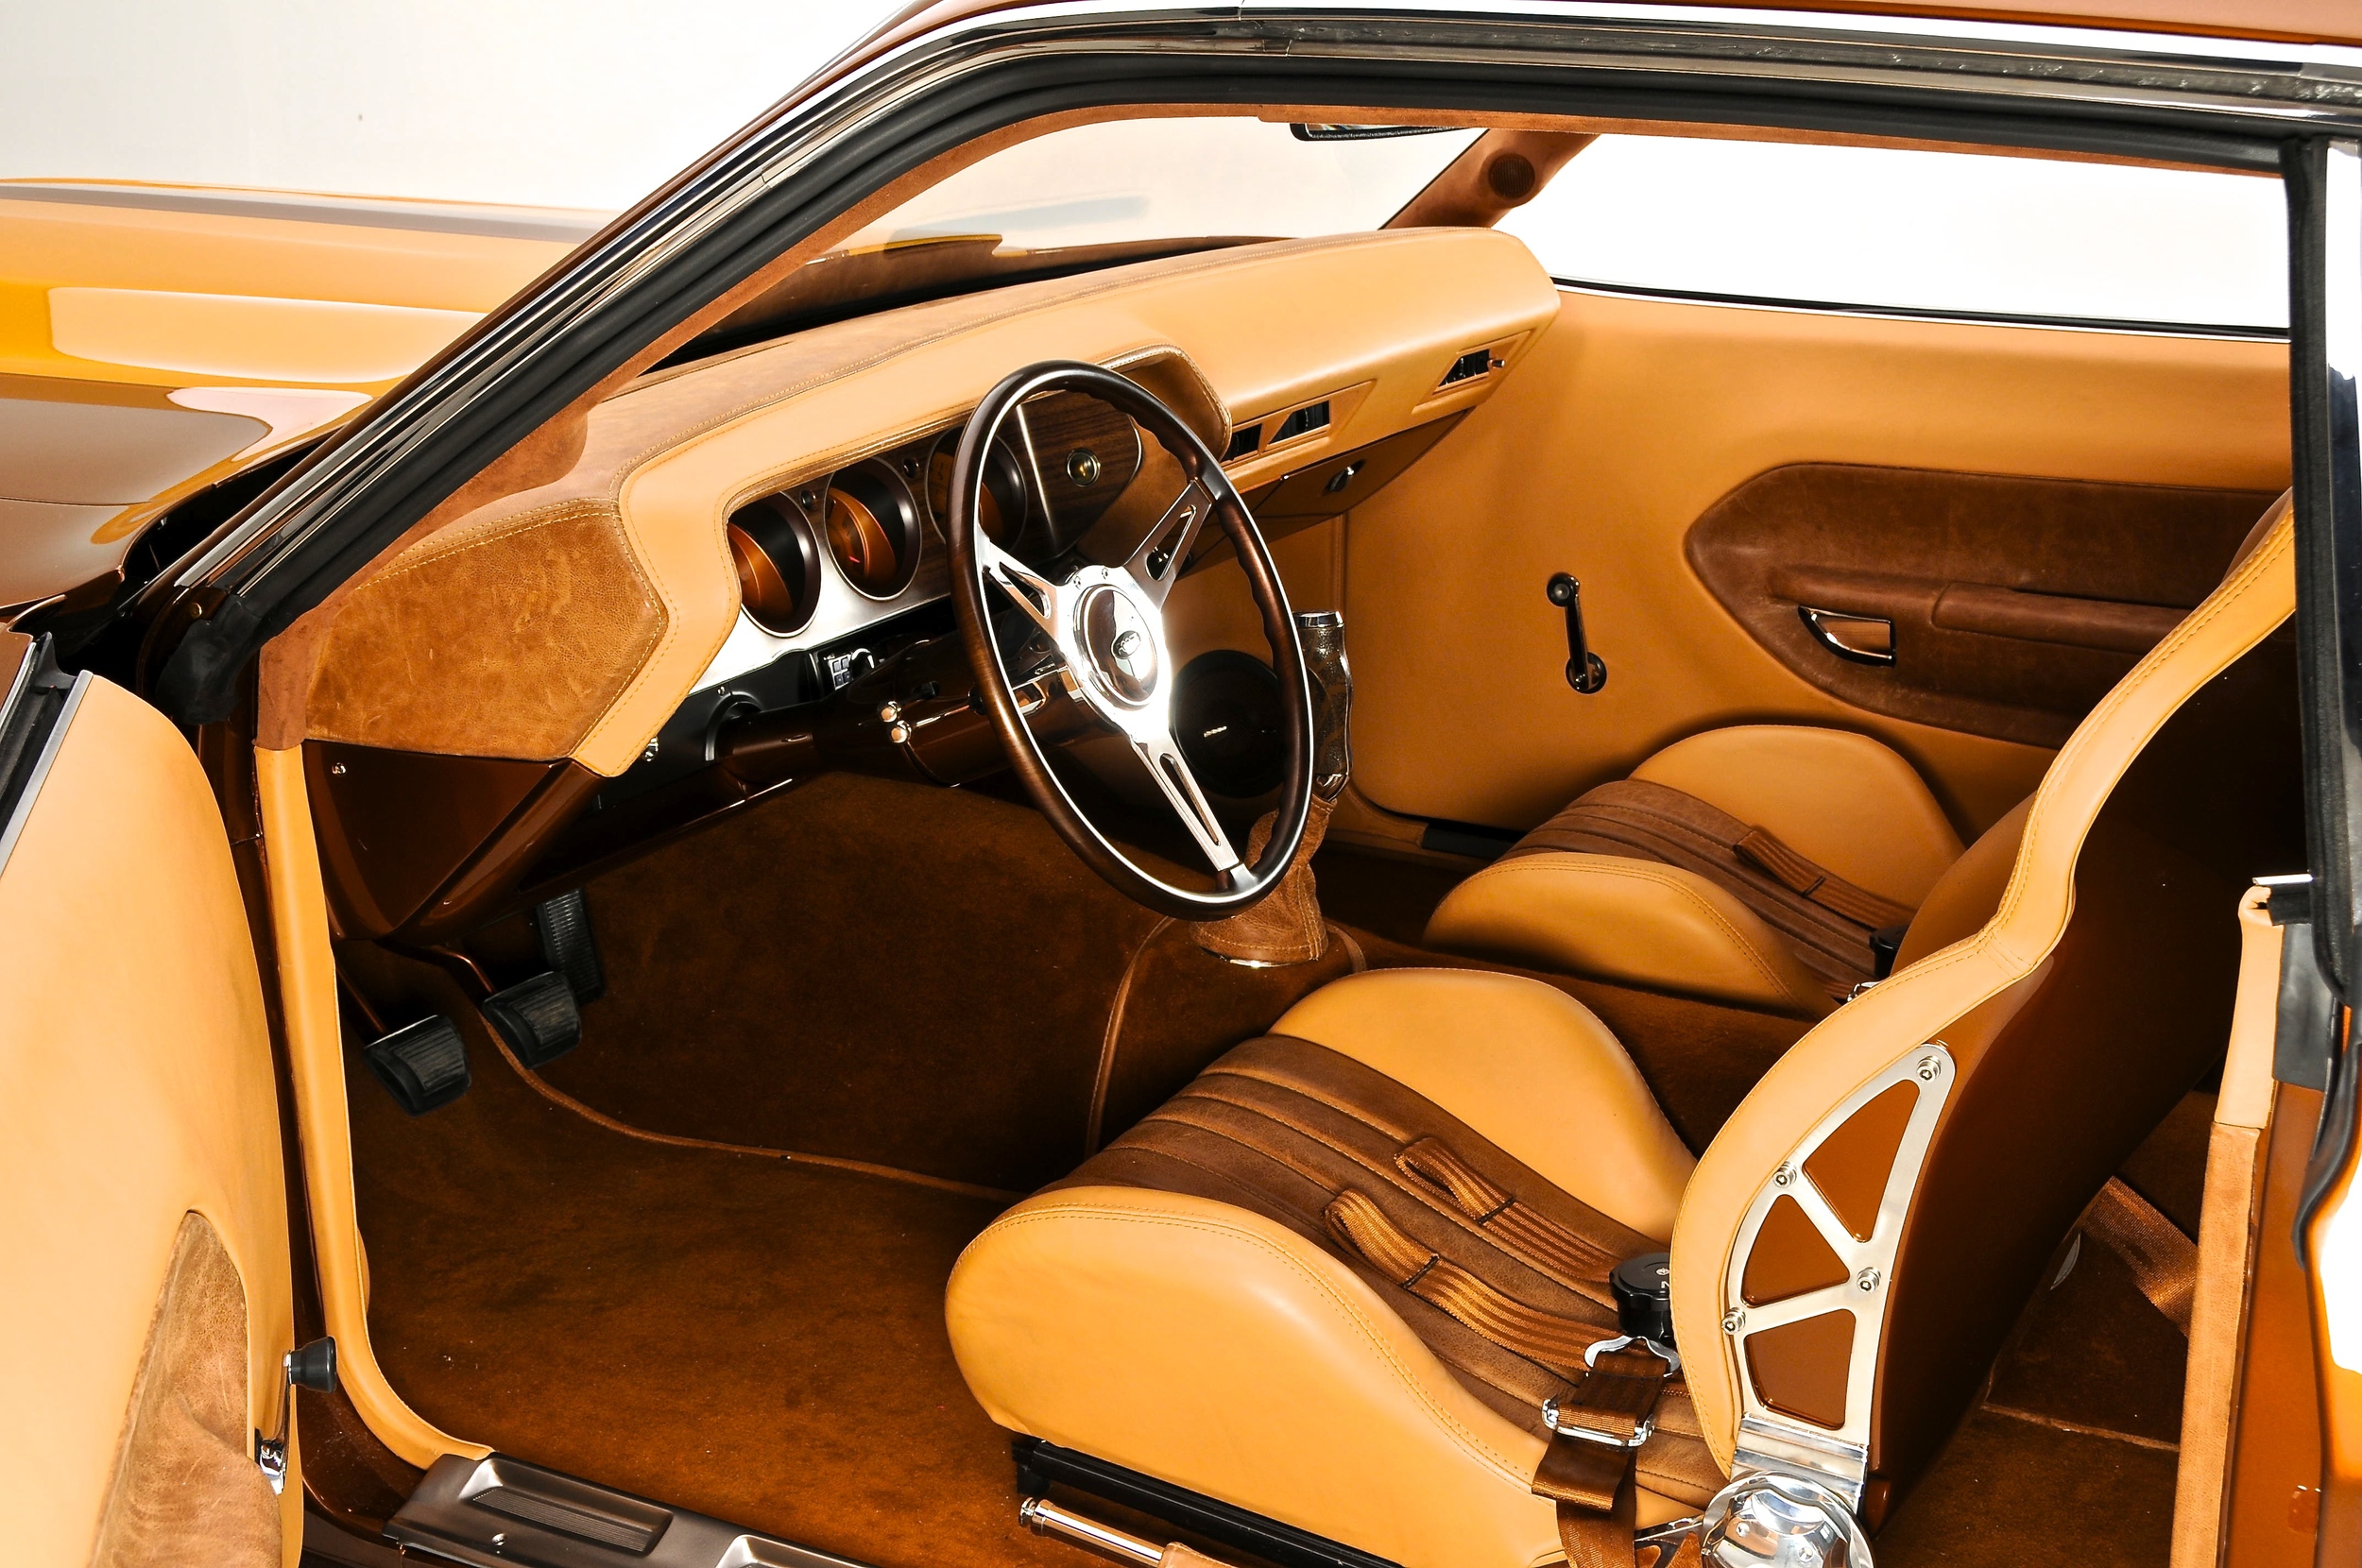 1970 Foose Terracuda wrapped in Garret Leather